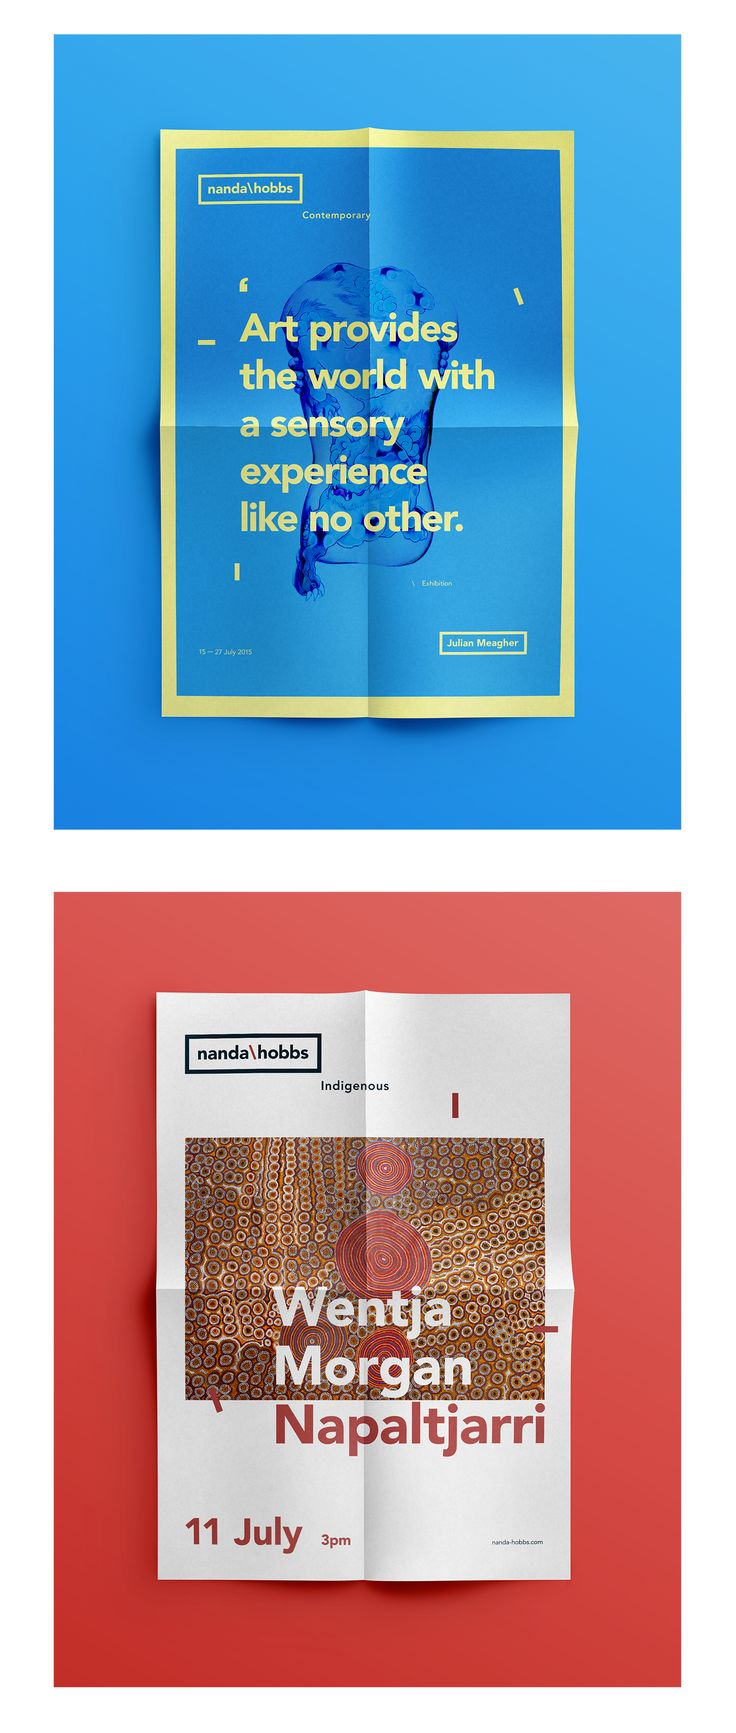 Design of the new identity & responsive website, and editorial content for Nanda\Hobbs Sydney's contemporary art gallery.Agency : Pollen SydneyRole: Art direction - Branding identity - Digital design - Interaction design